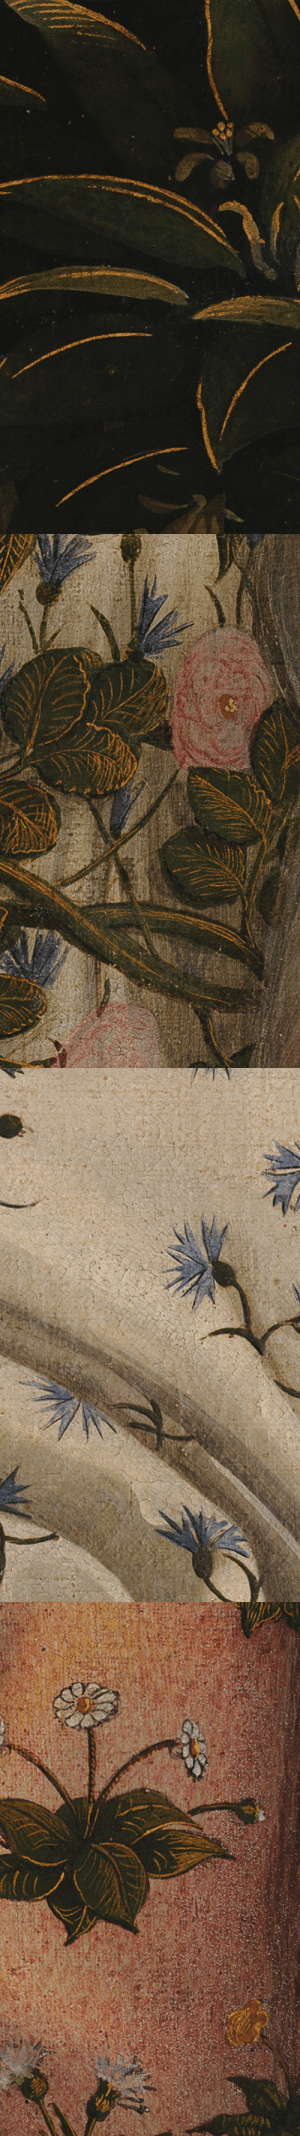 mixscrns:  Details from Sandro Botticelli, The Birth of Venus: mixscrns:  Details from Sandro Botticelli, The Birth of Venus